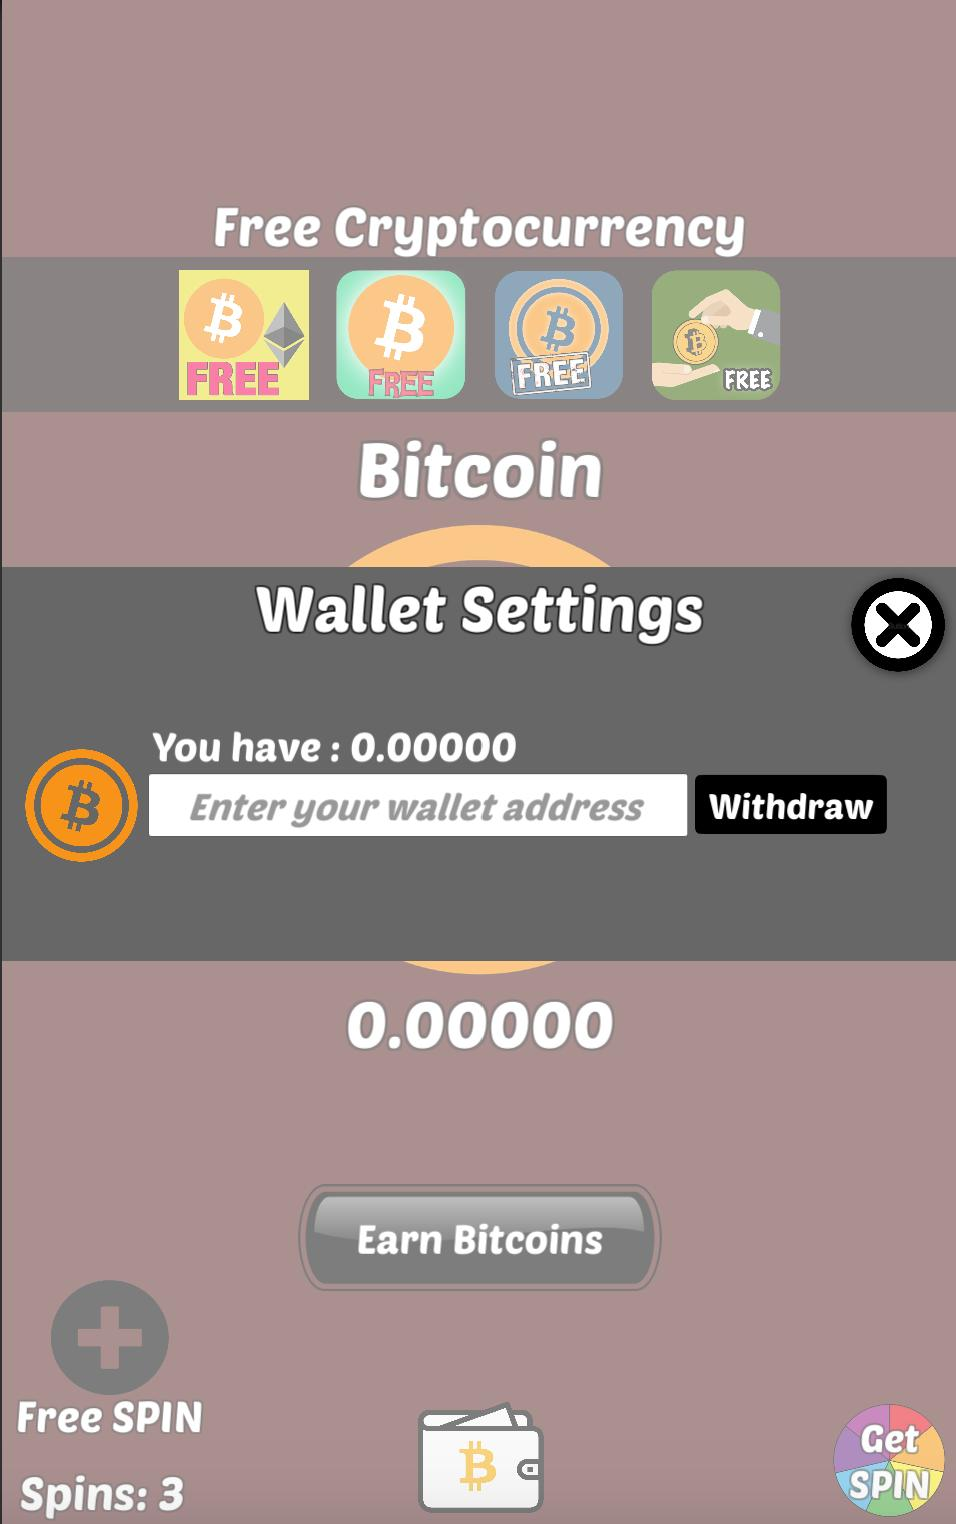 Easiest way to get free bitcoins